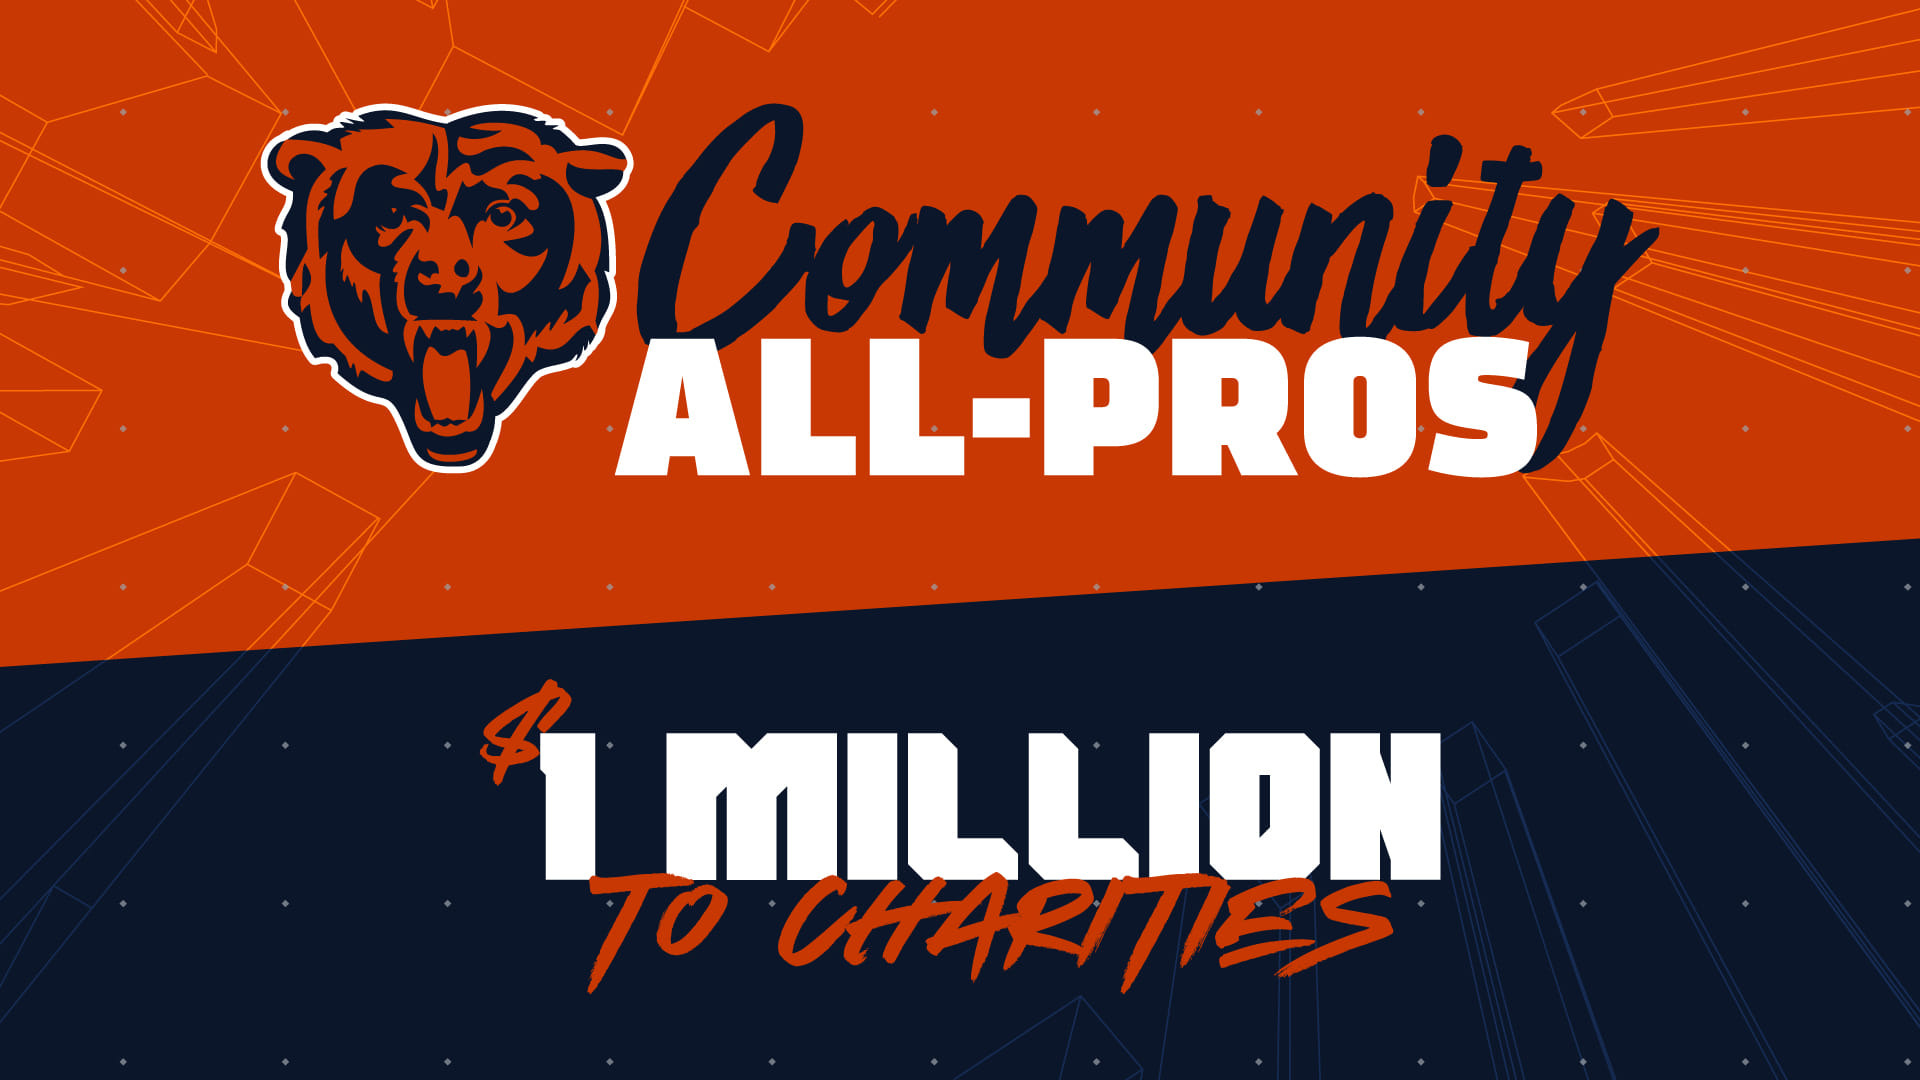 Bears Community All-Pros